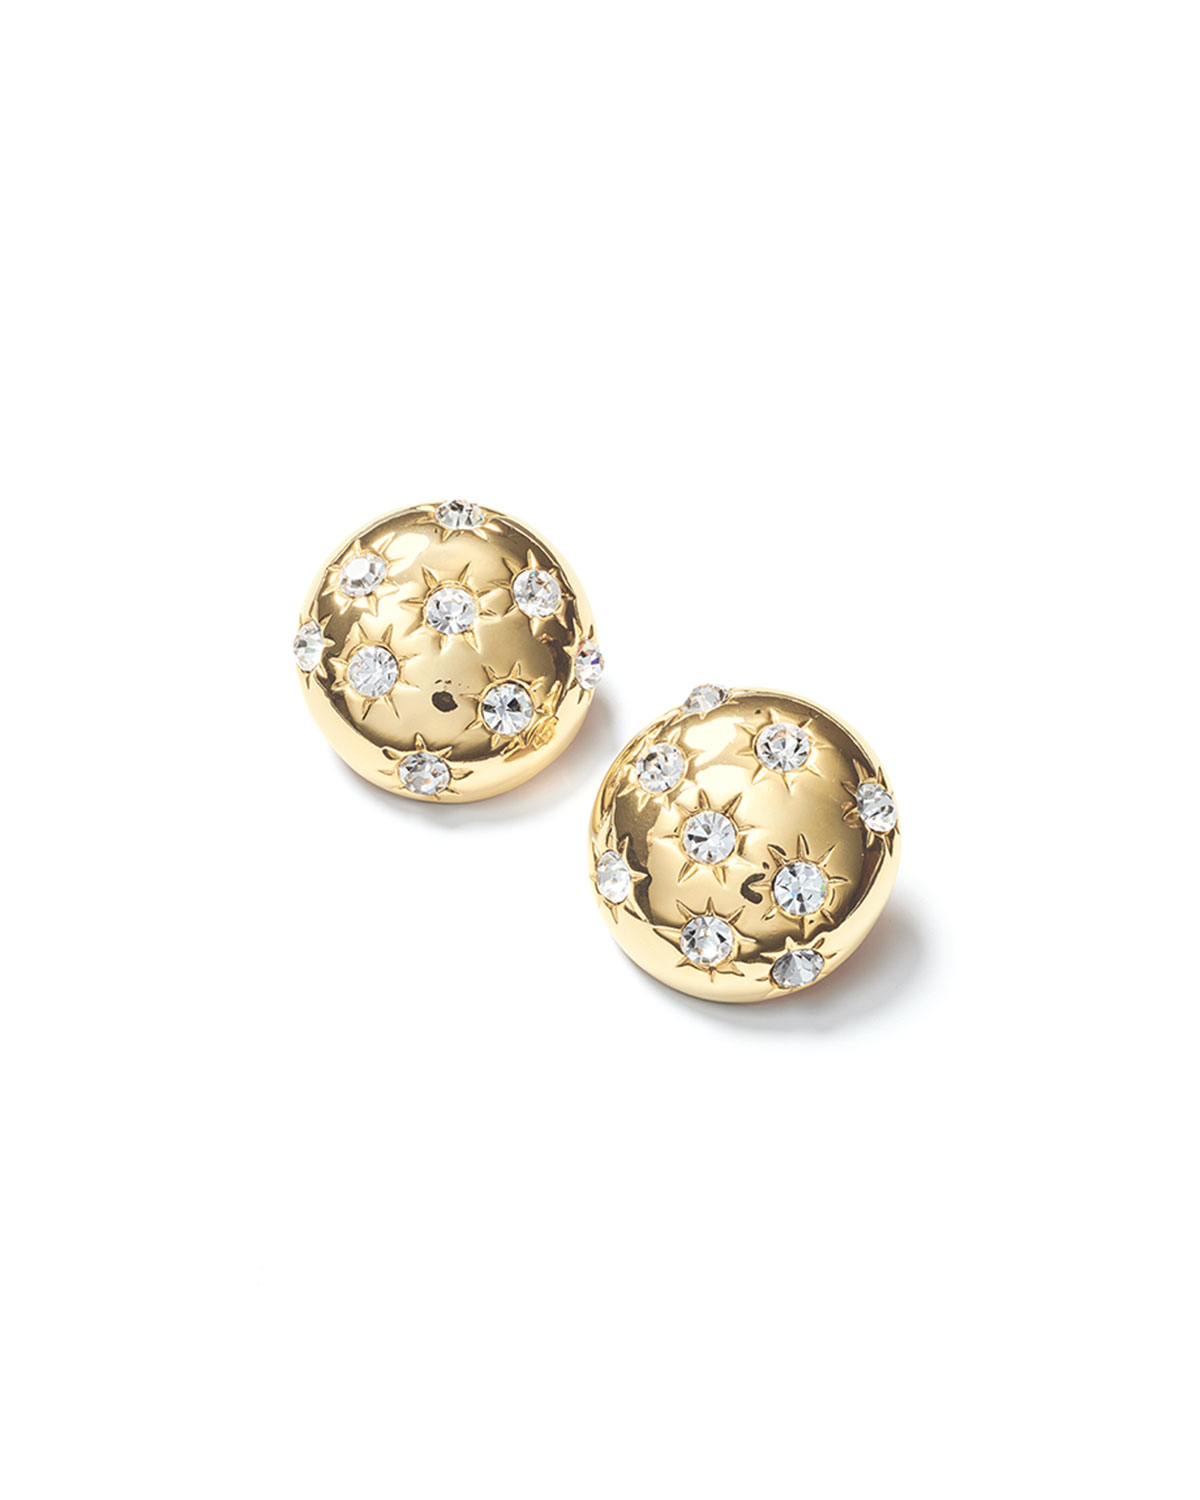 Fallon Accessories STARBURST DECO BUTTON EARRINGS